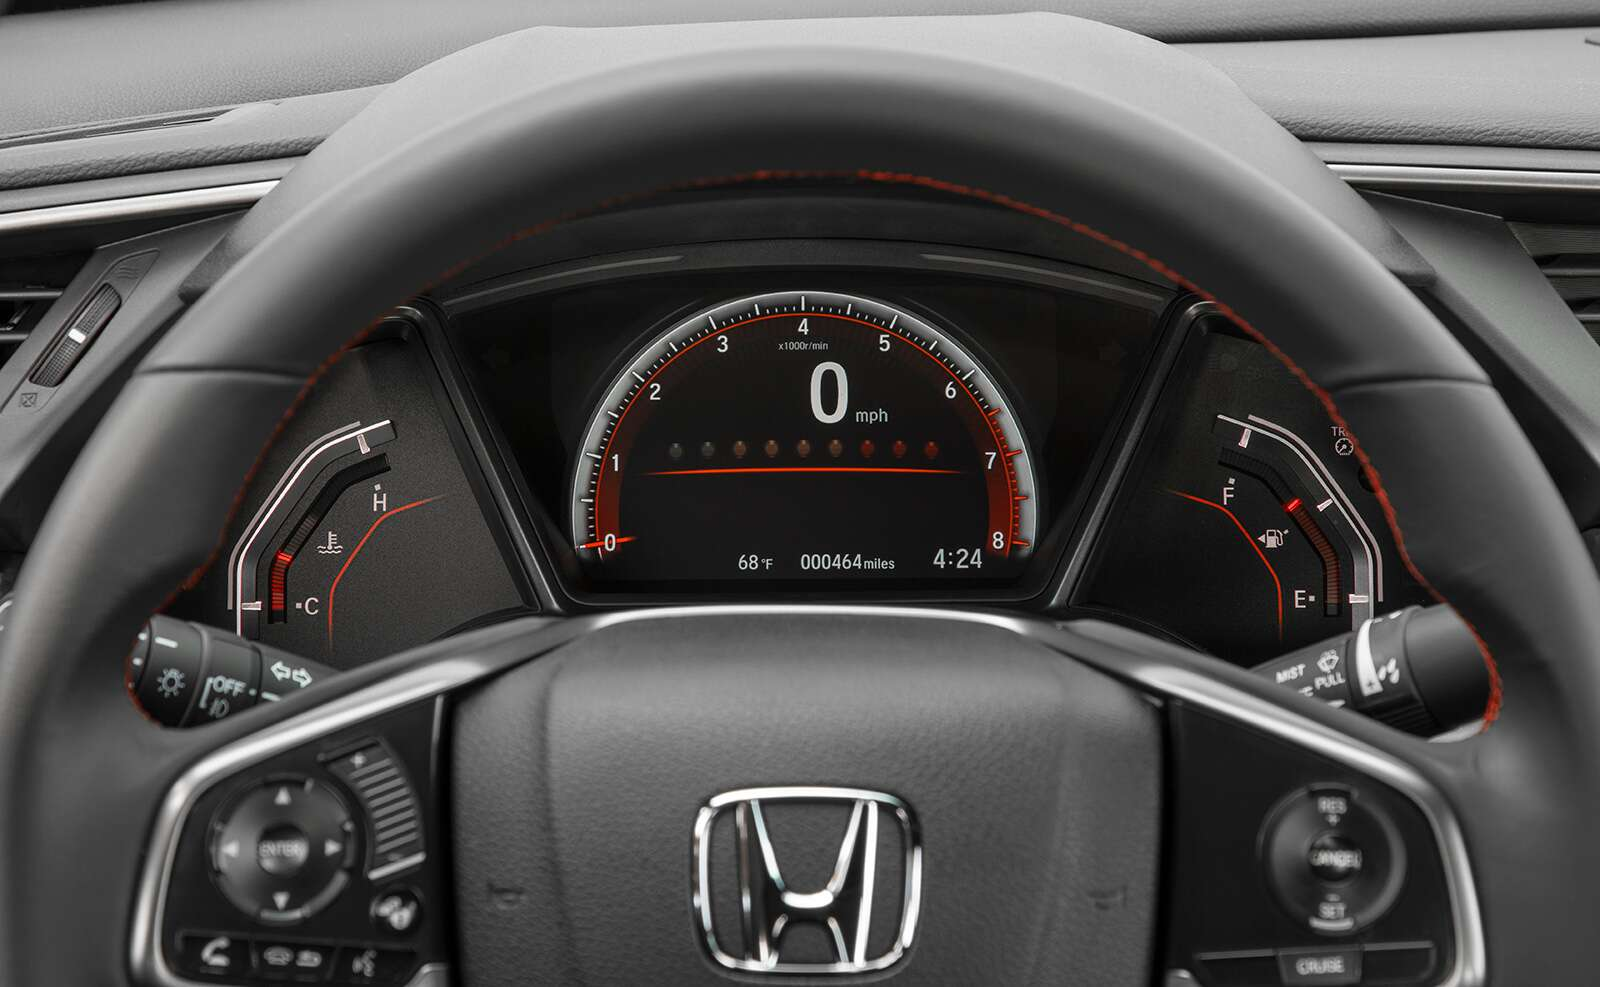 2018 Honda Civic Si Review Bargain Doesn T Do It Justice The Drive